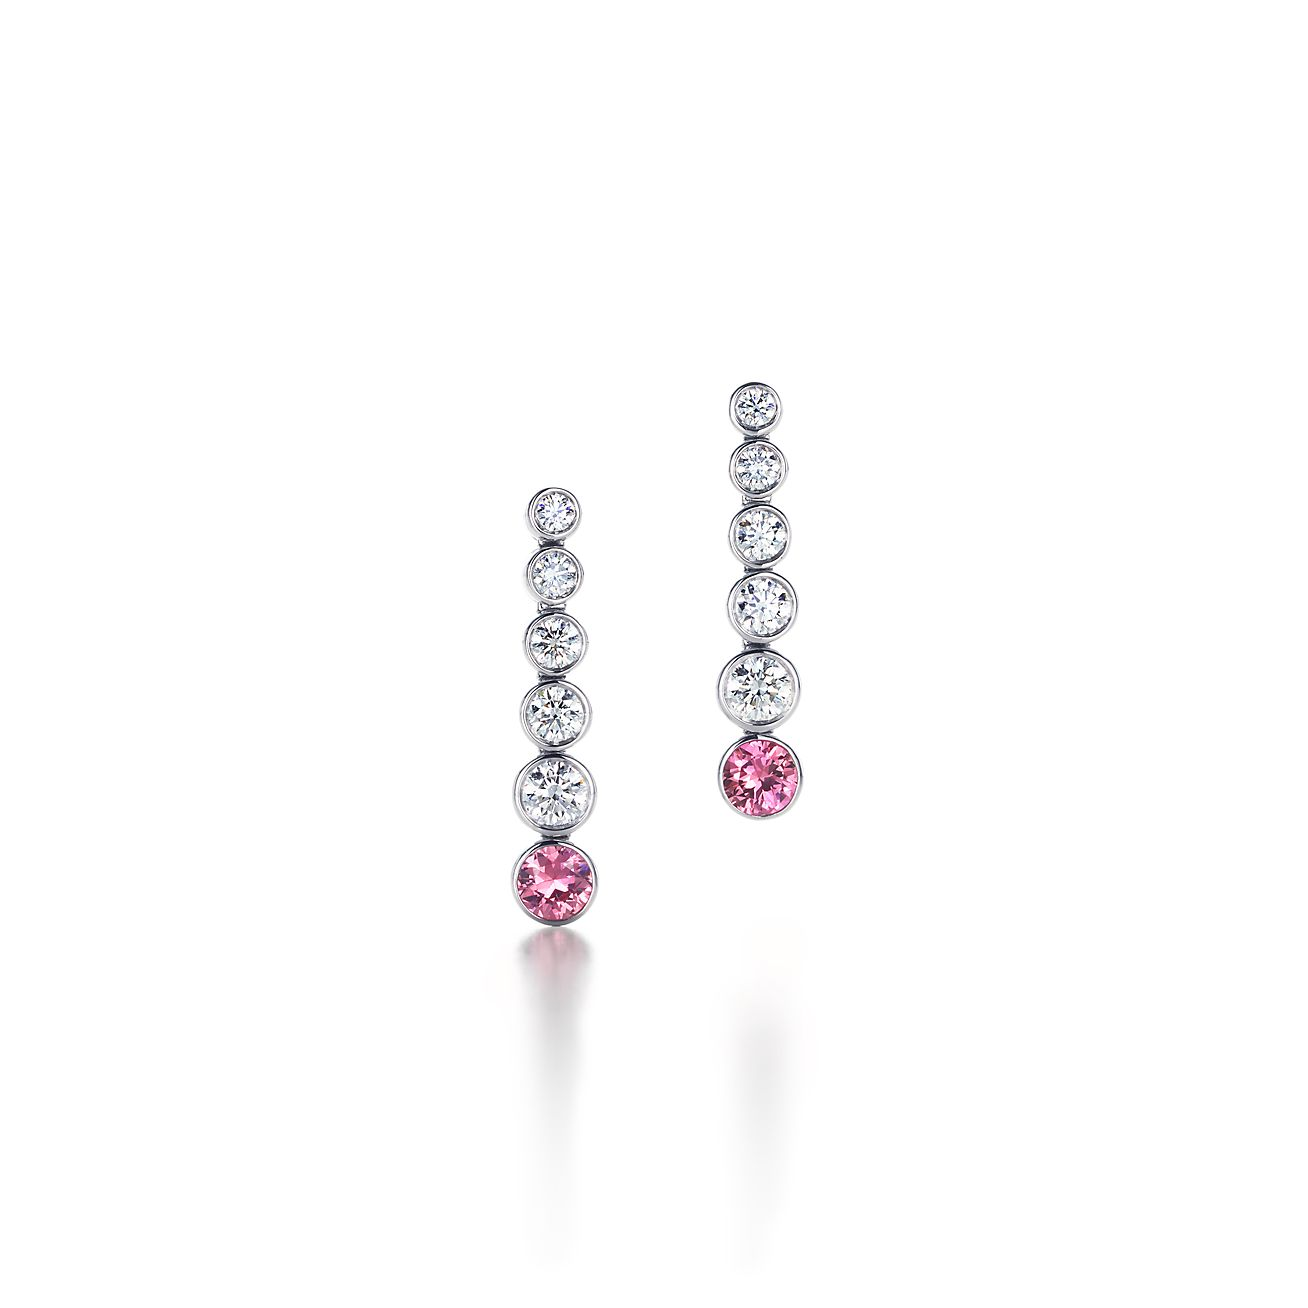 3bf74e2b5 ... tiffany jazz™ graduated drop earrings with sapphires and diamonds in  platinum. tiffany co. ...